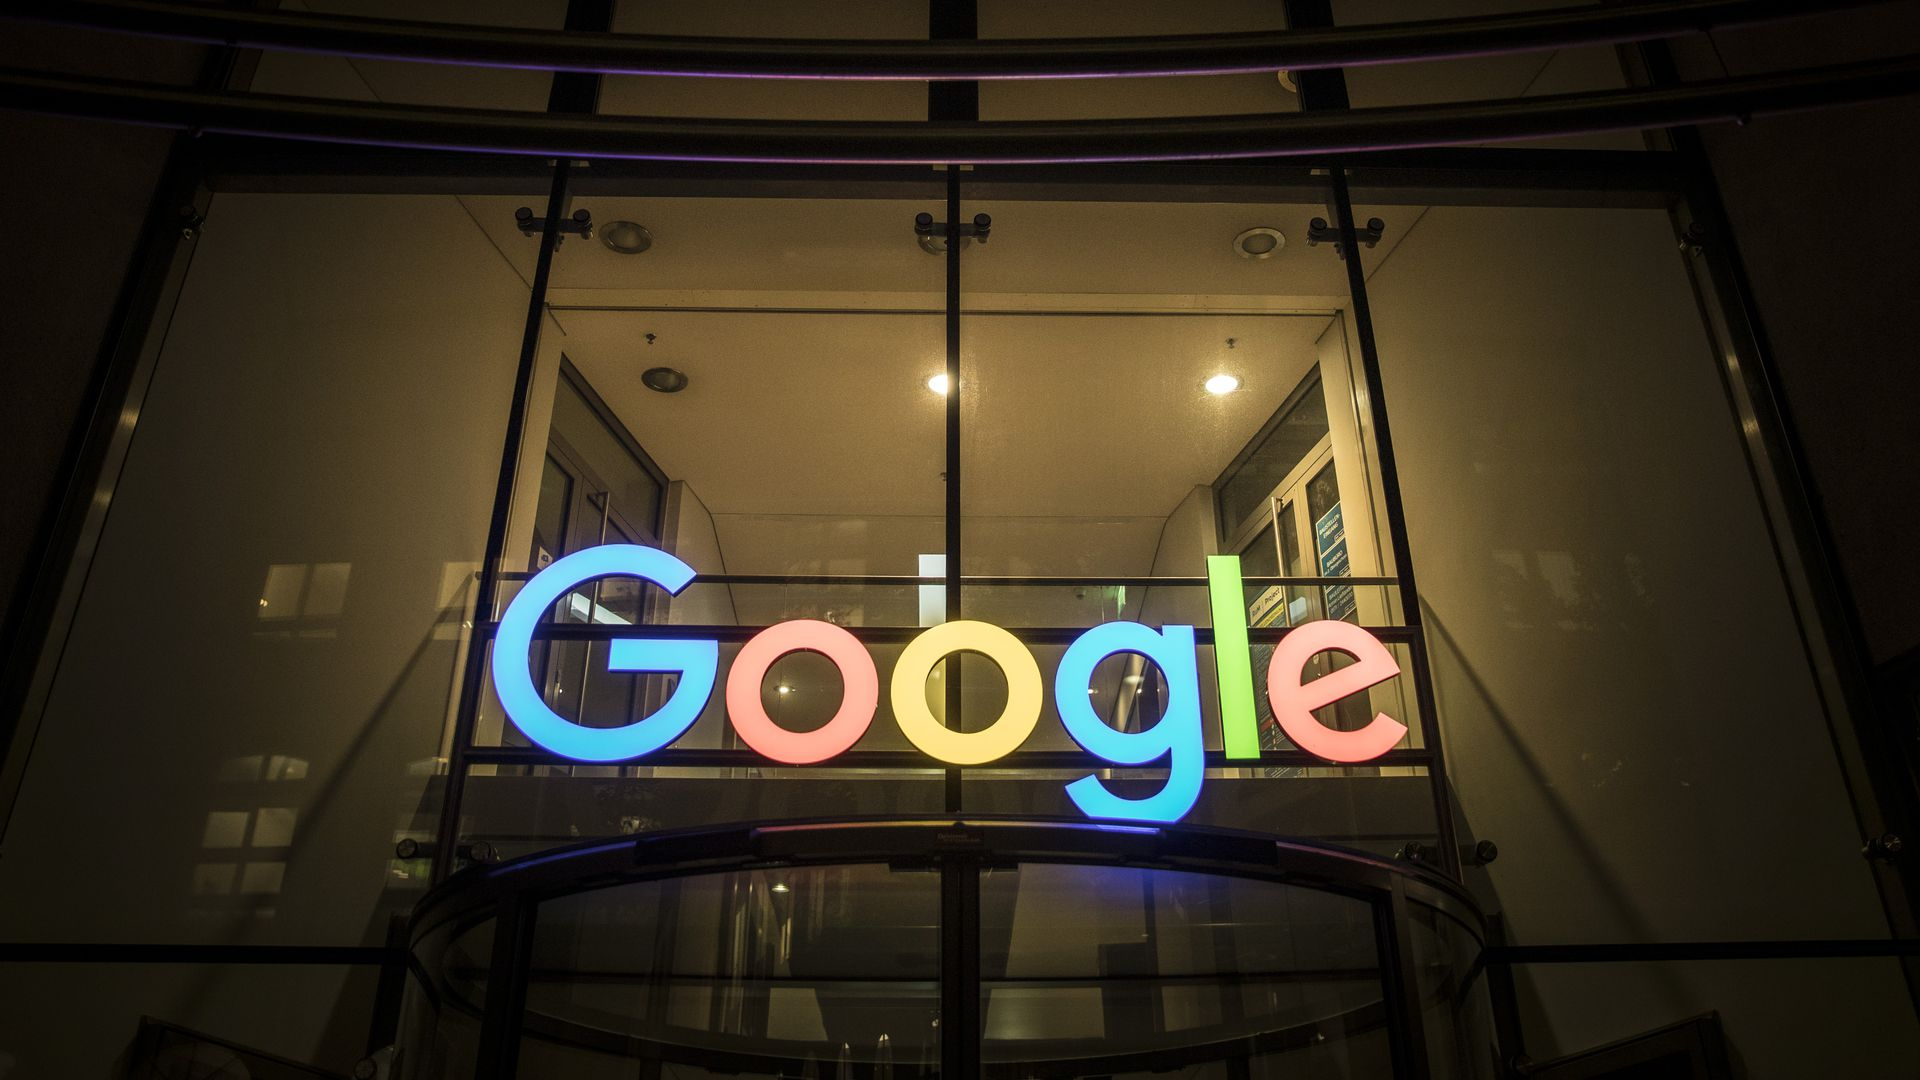 A Google sign lit up at night outside of an office